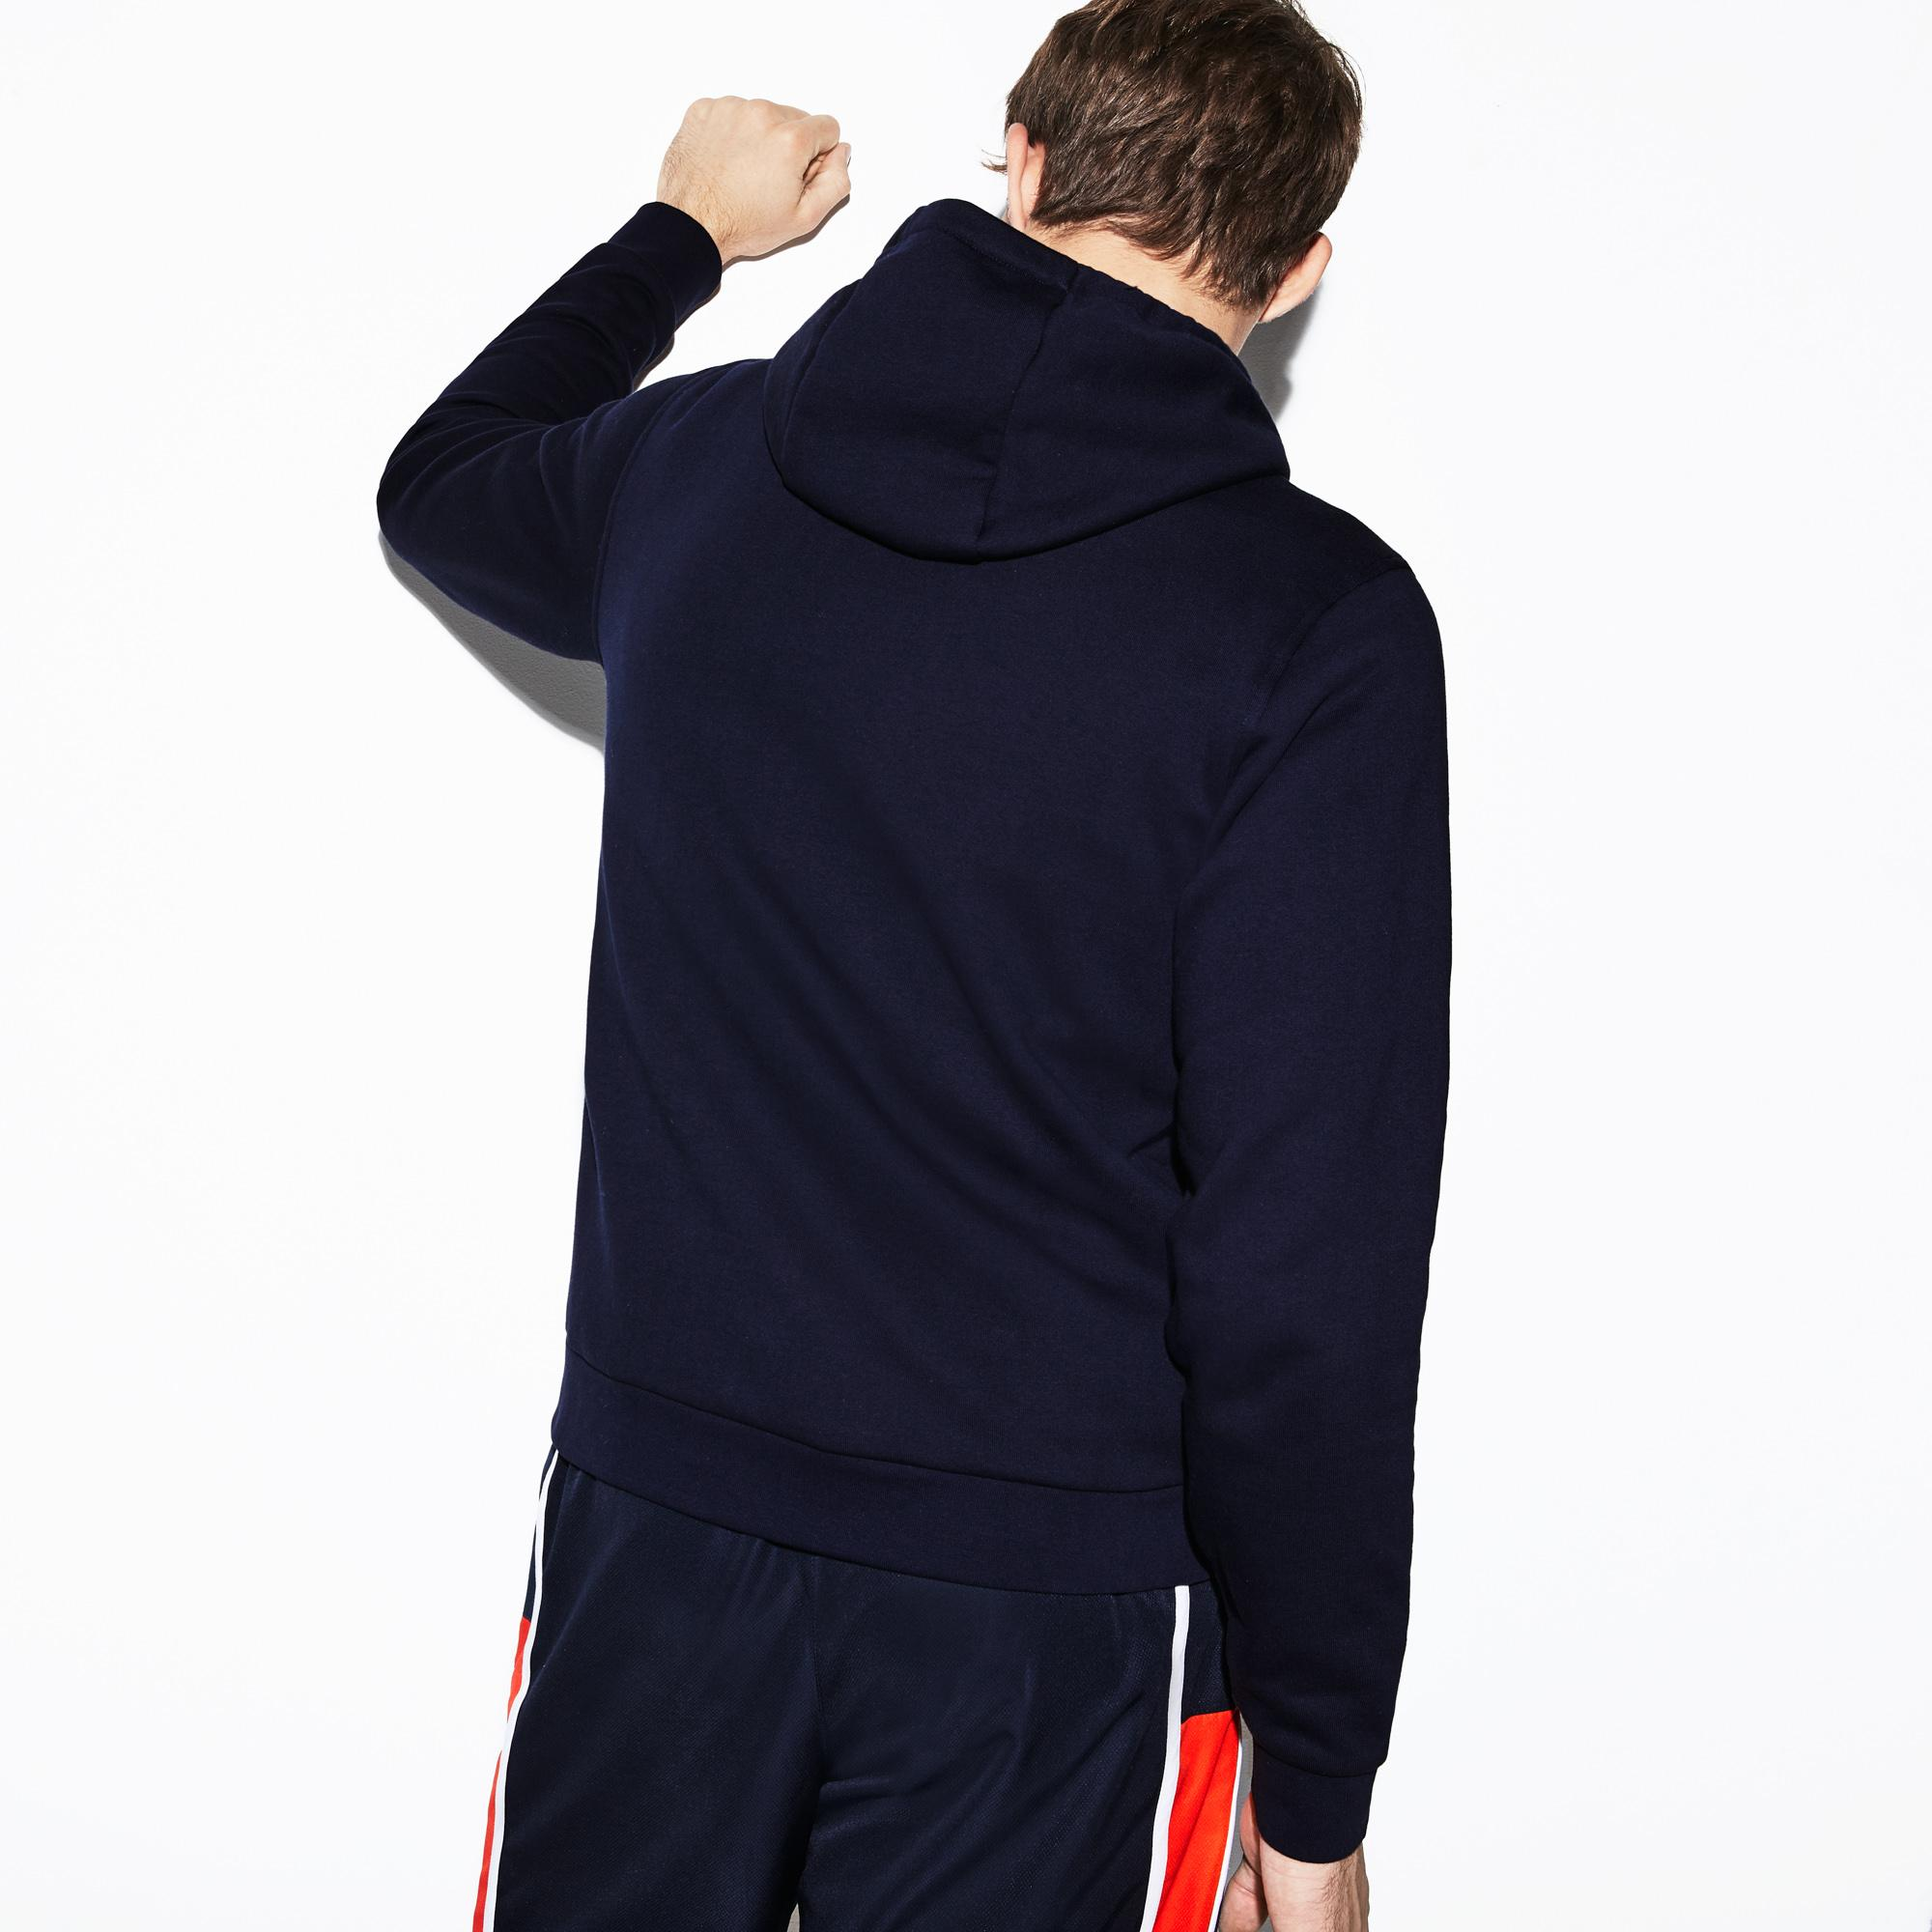 Lacoste Sport Men's Hooded Fleece Tennis SweatShirt